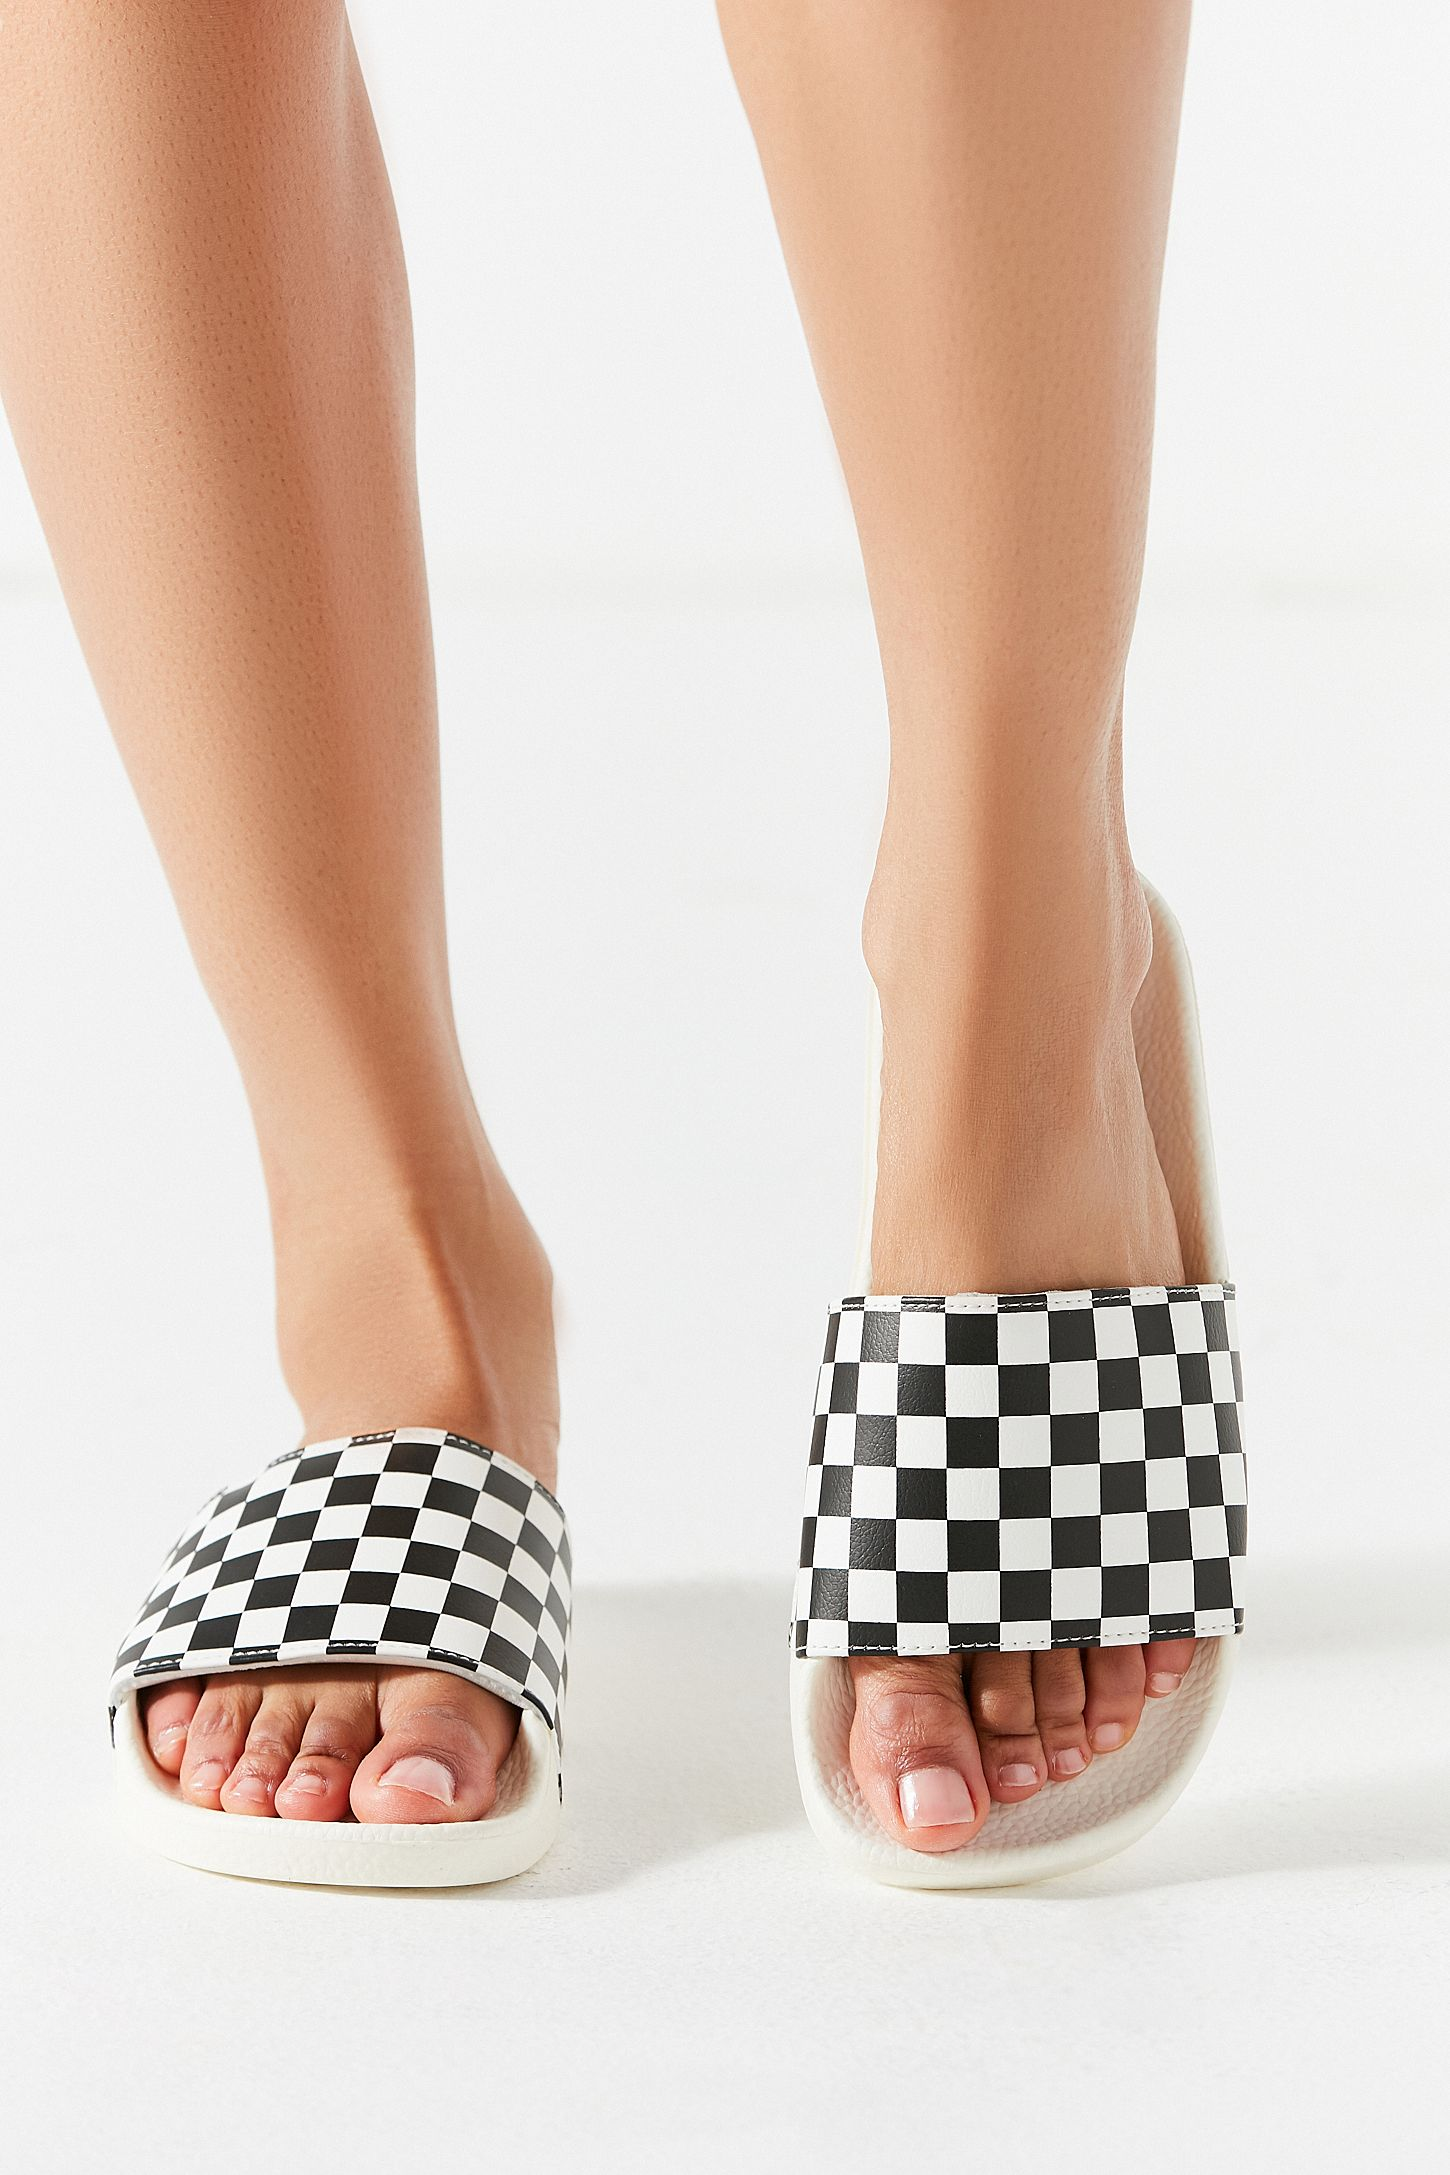 297d0acb6b Vans Checkerboard Slide